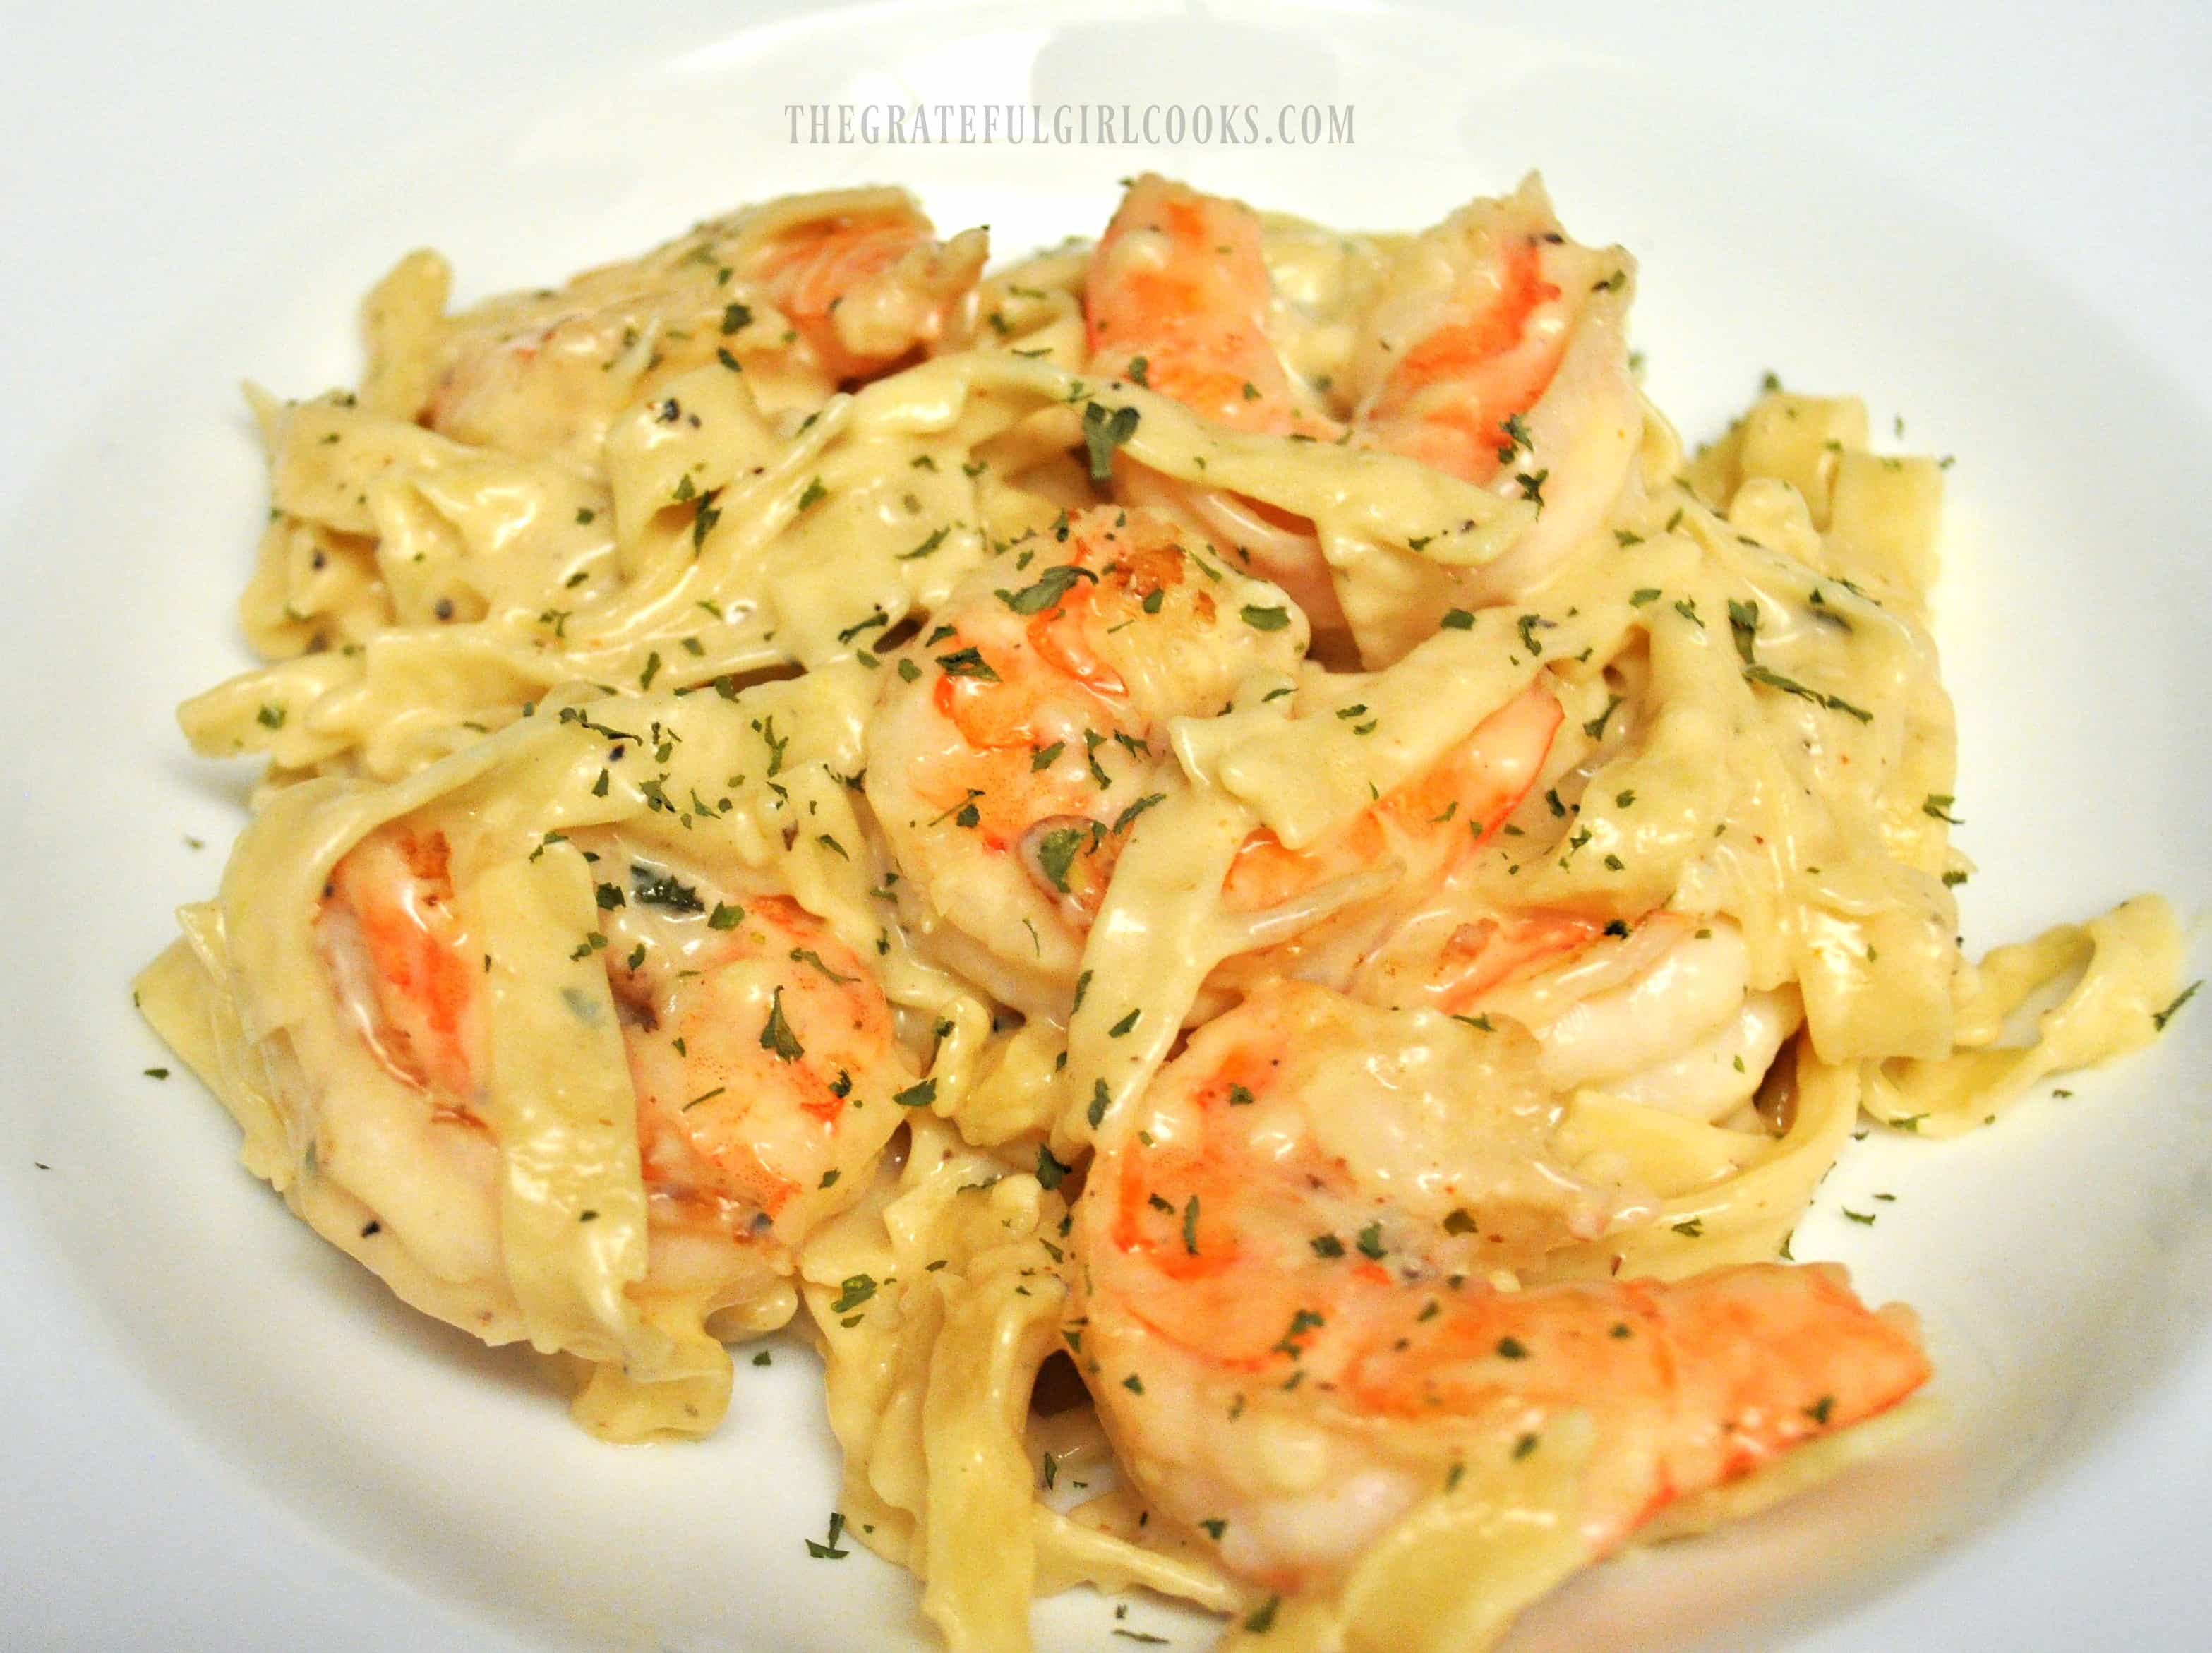 Garlic Parmesan Pasta and Shrimp / The Grateful Girl Cooks! Pan-seared shrimp and fettucine noodles are paired with a creamy garlic Parmesan sauce in this easy to prepare pasta dinner.